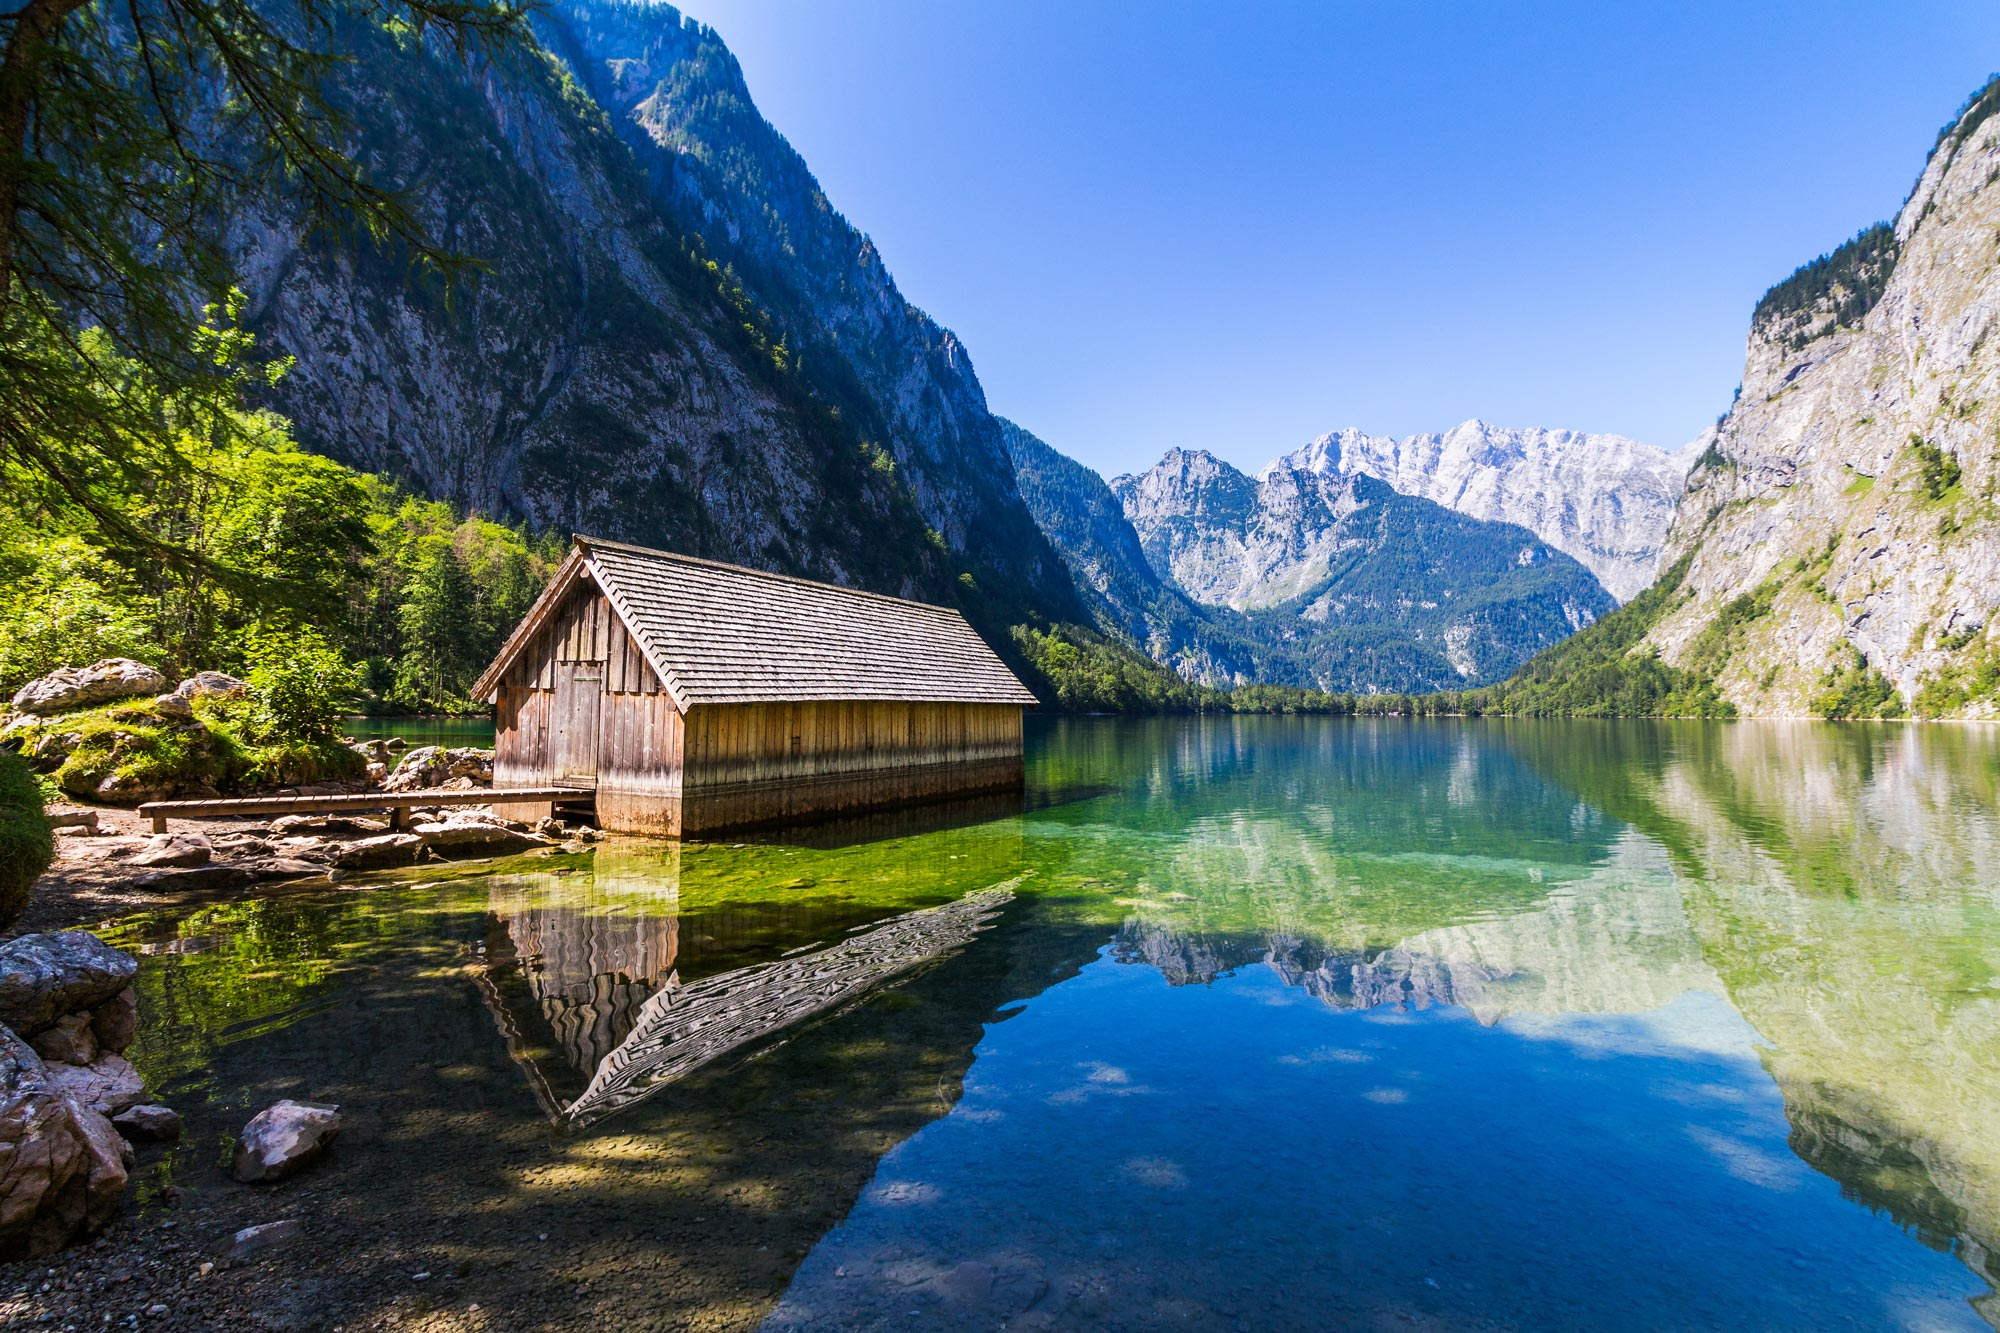 fantastic-views-of-the-turquoise-lake-obersee-under-sunlight-638764534_3869x2579